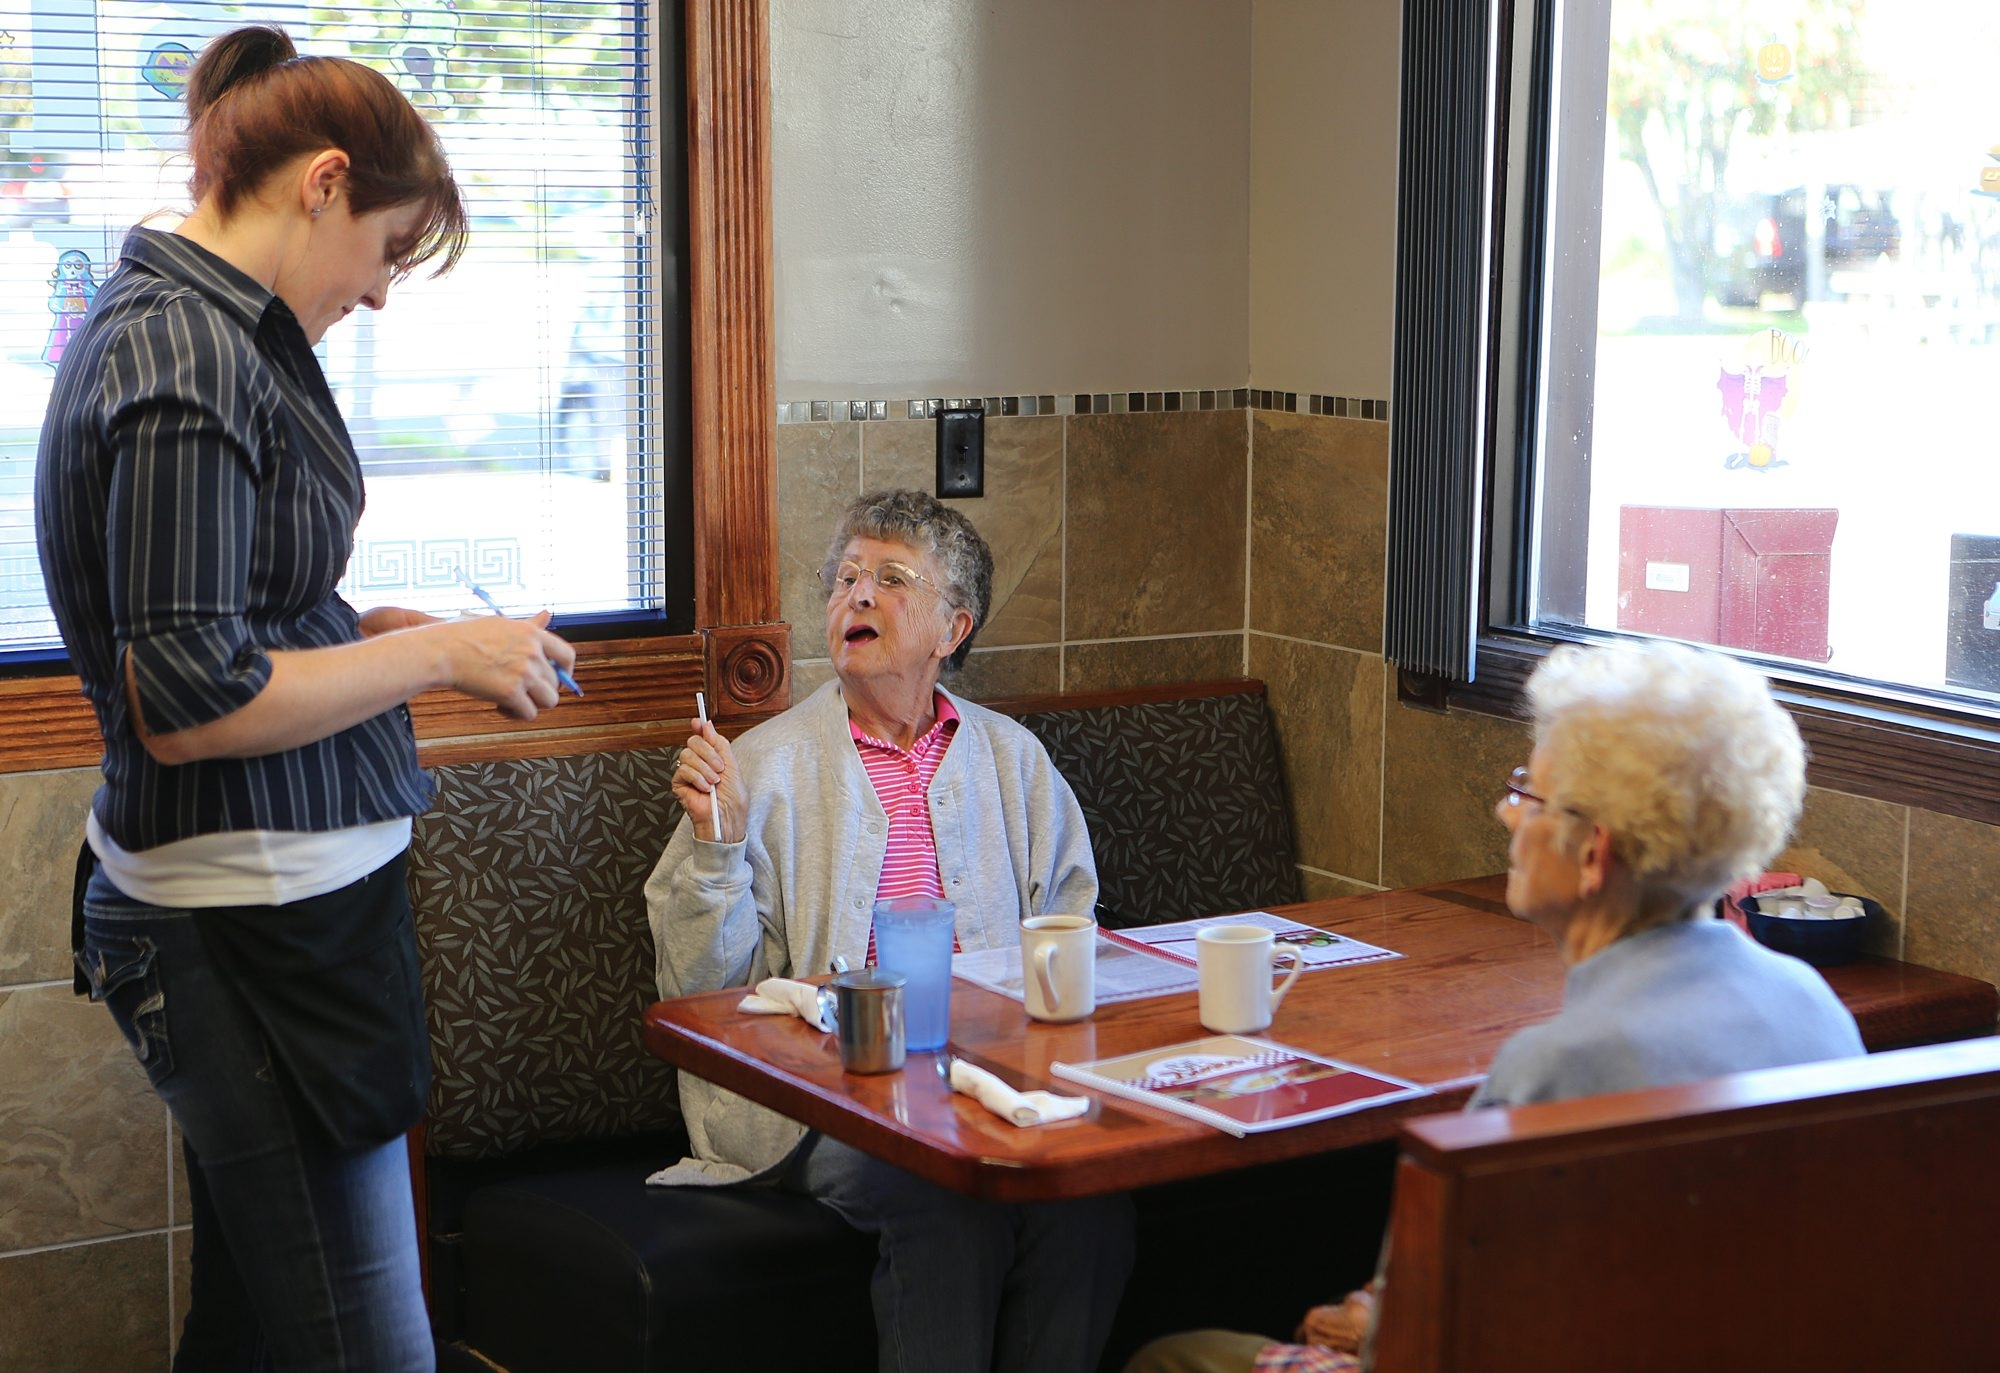 Stephanie Butler, left, takes an order from Linda Winkley, middle, and Dorothy Weir on Oct. 2 at Bill's Diner in Newfane.